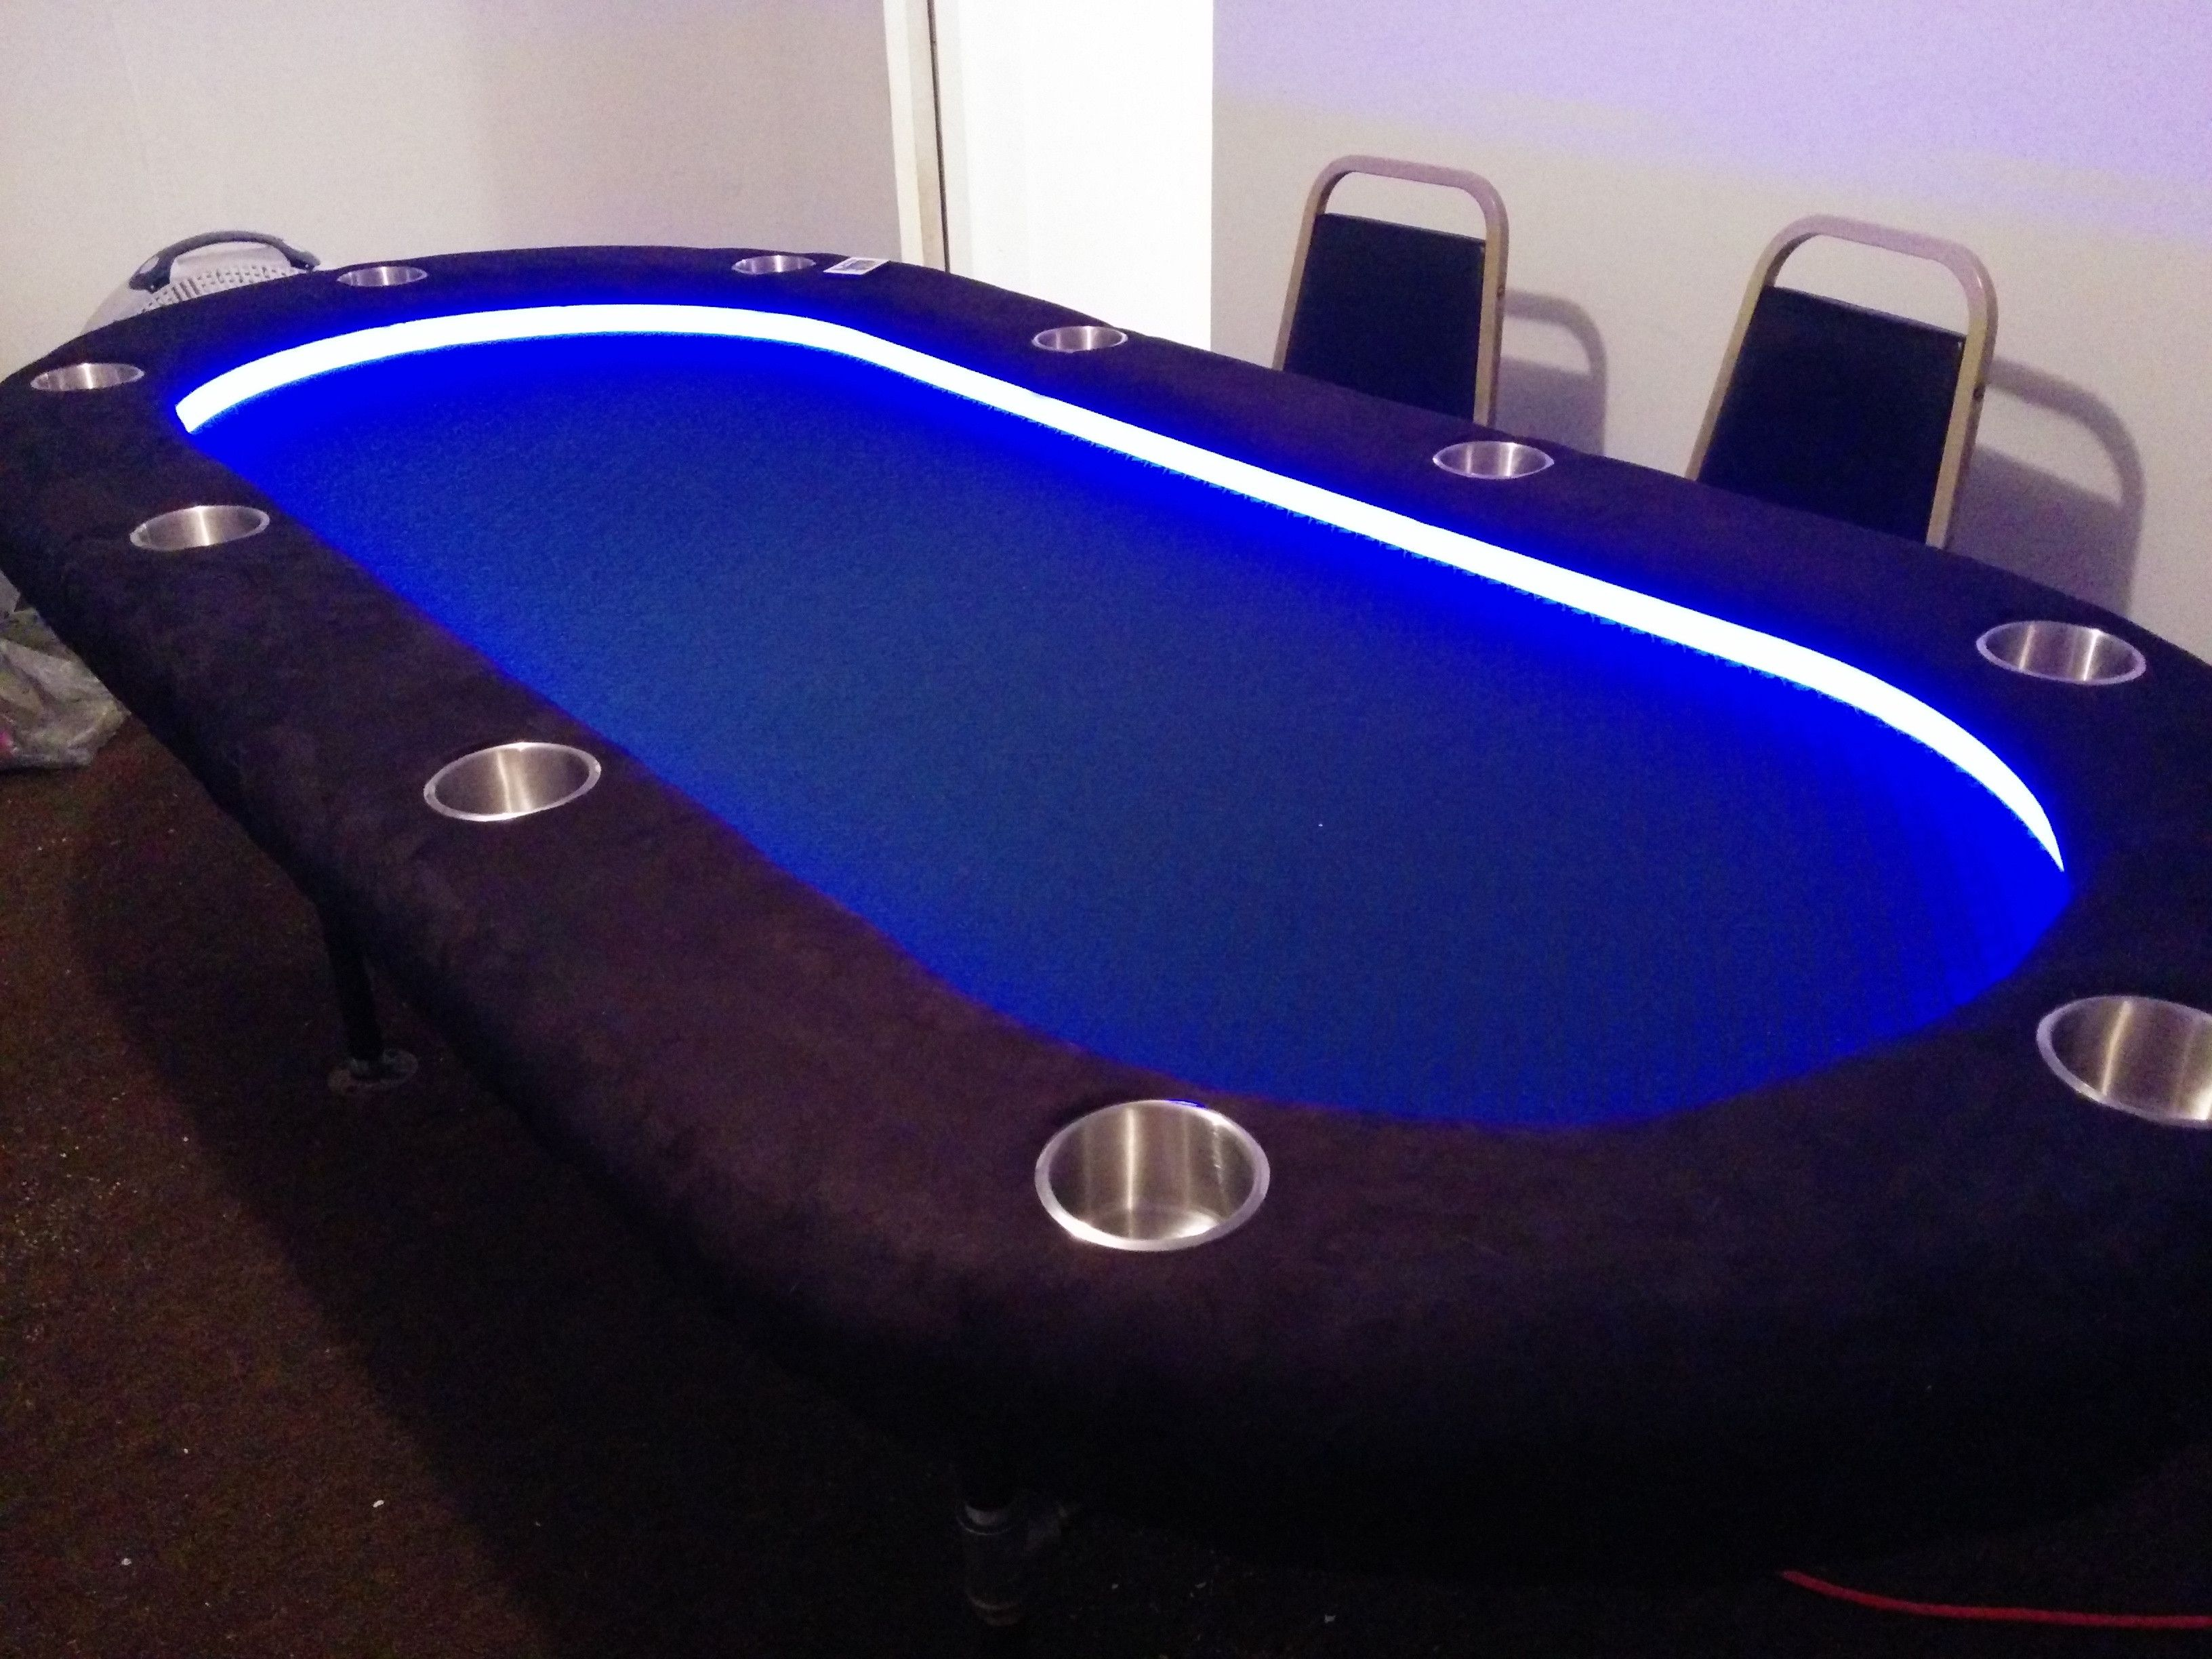 Lighted racetrack poker table plans caisse a outils sur roulette